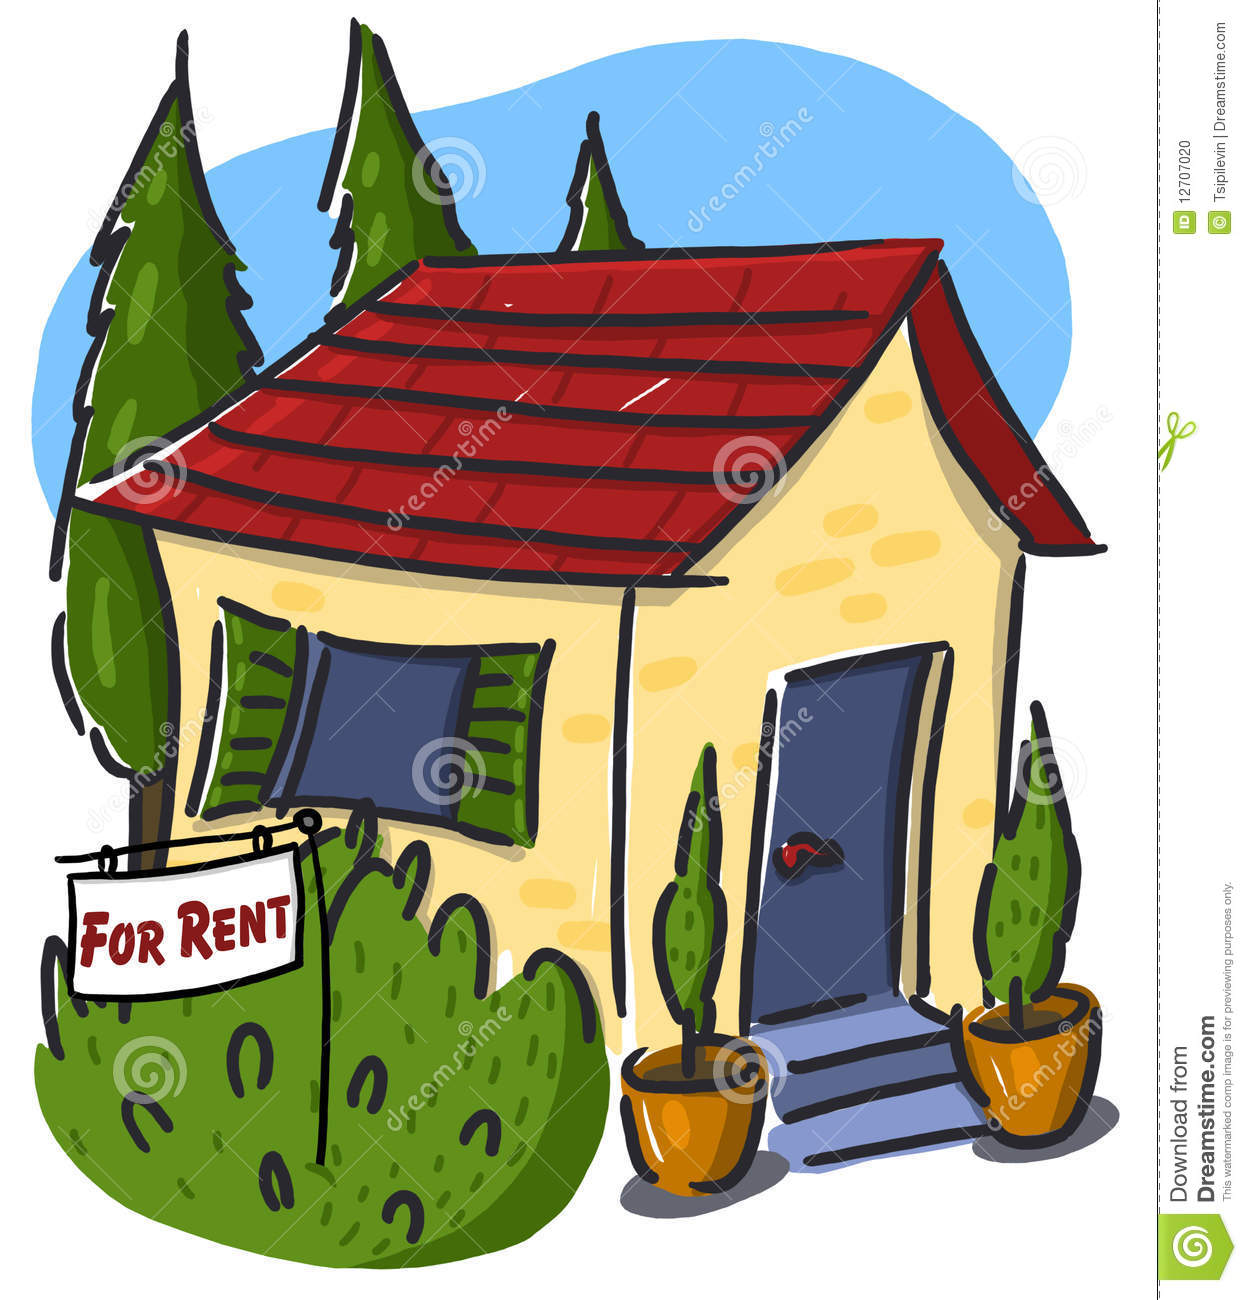 house for rent clipart - photo #14